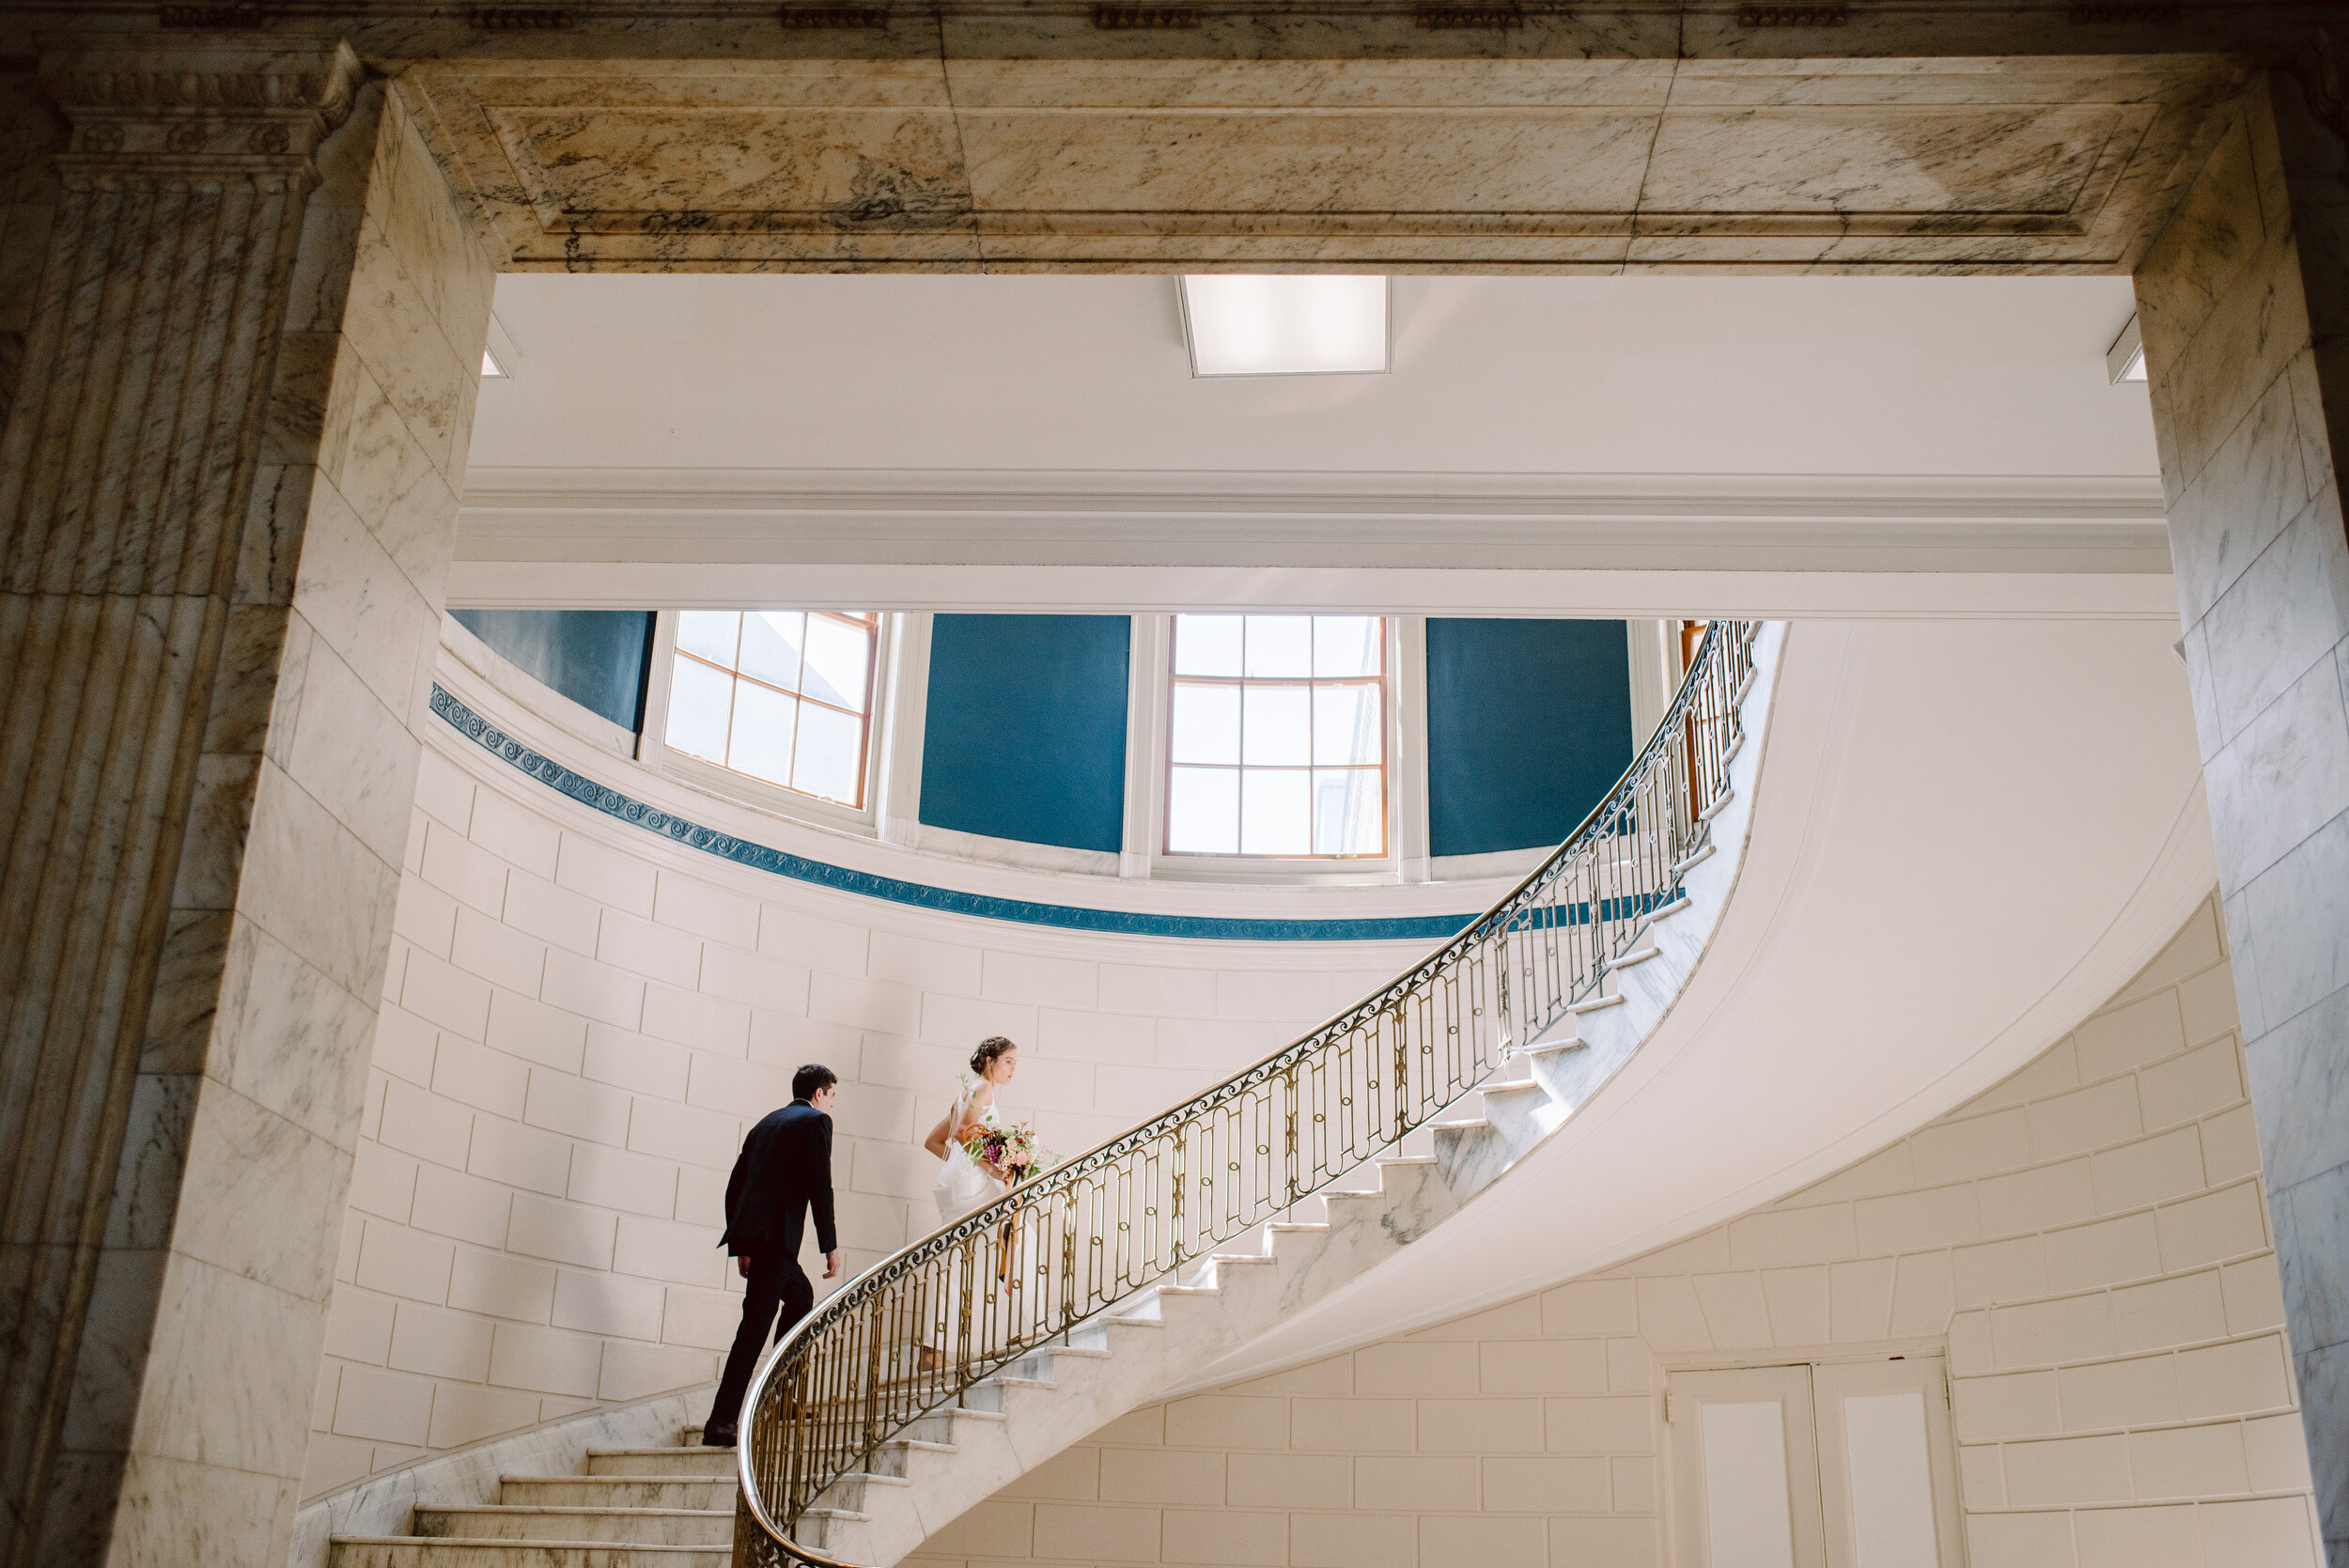 inside the portland maine city hall with spiral stairs